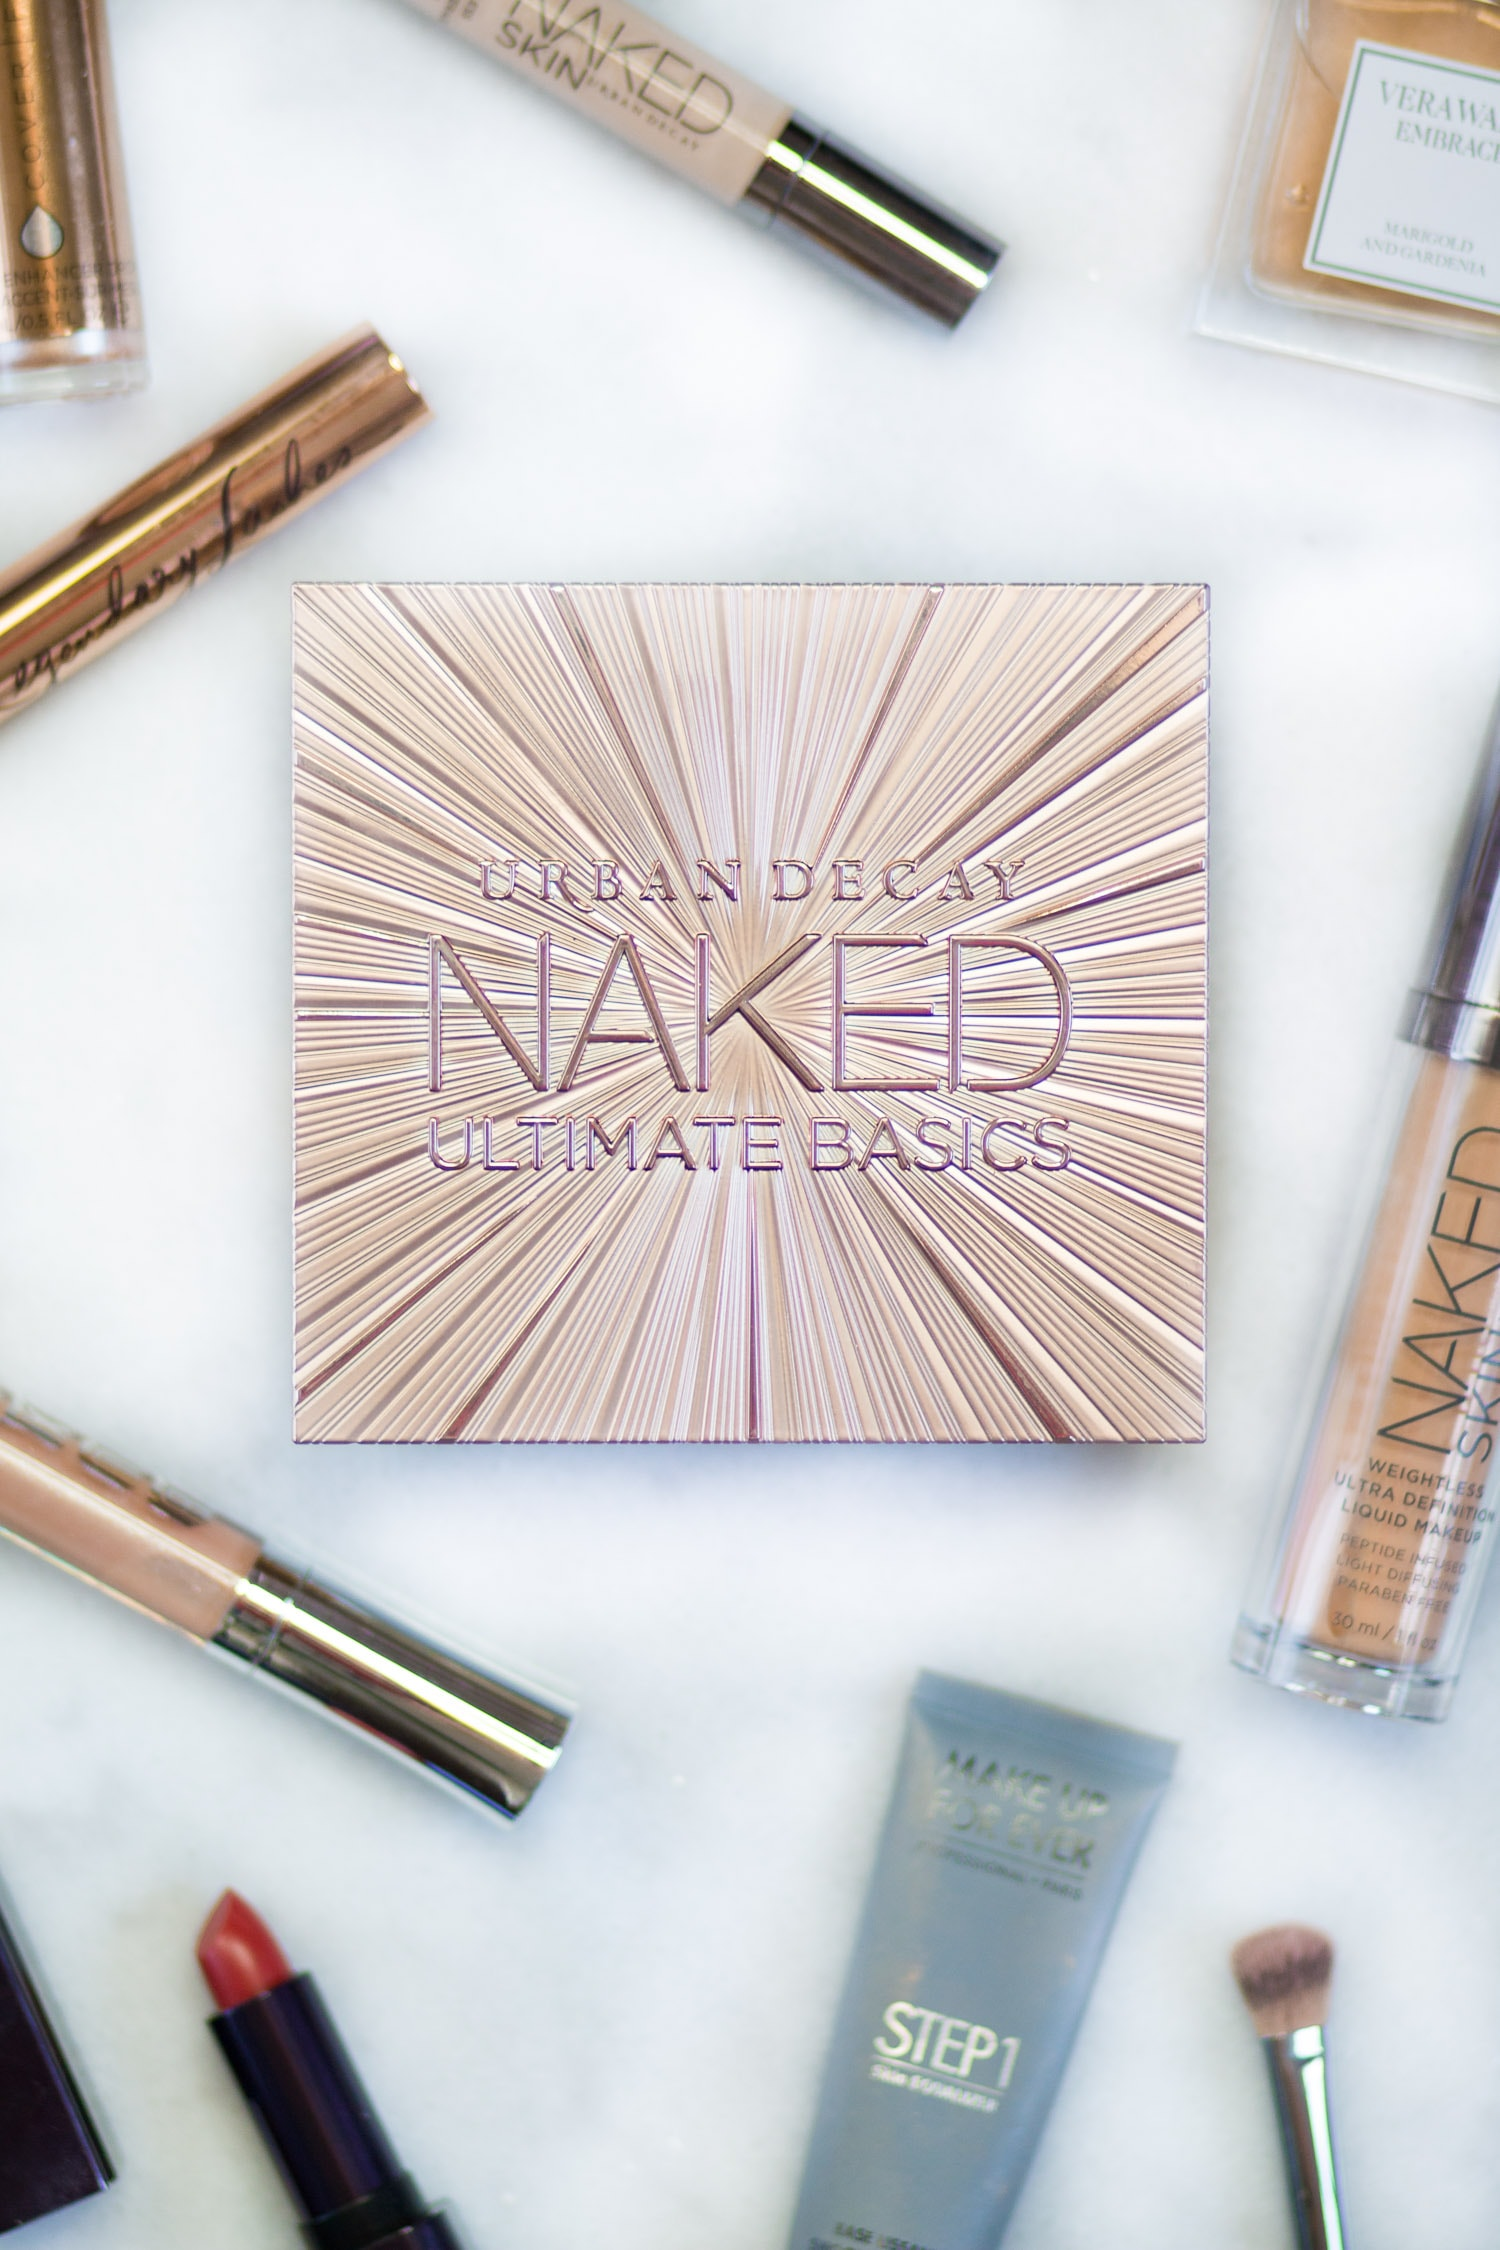 Urban Decay Naked Ultimate Basics palette swatches and review by beauty blogger Ashley Brooke Nicholas